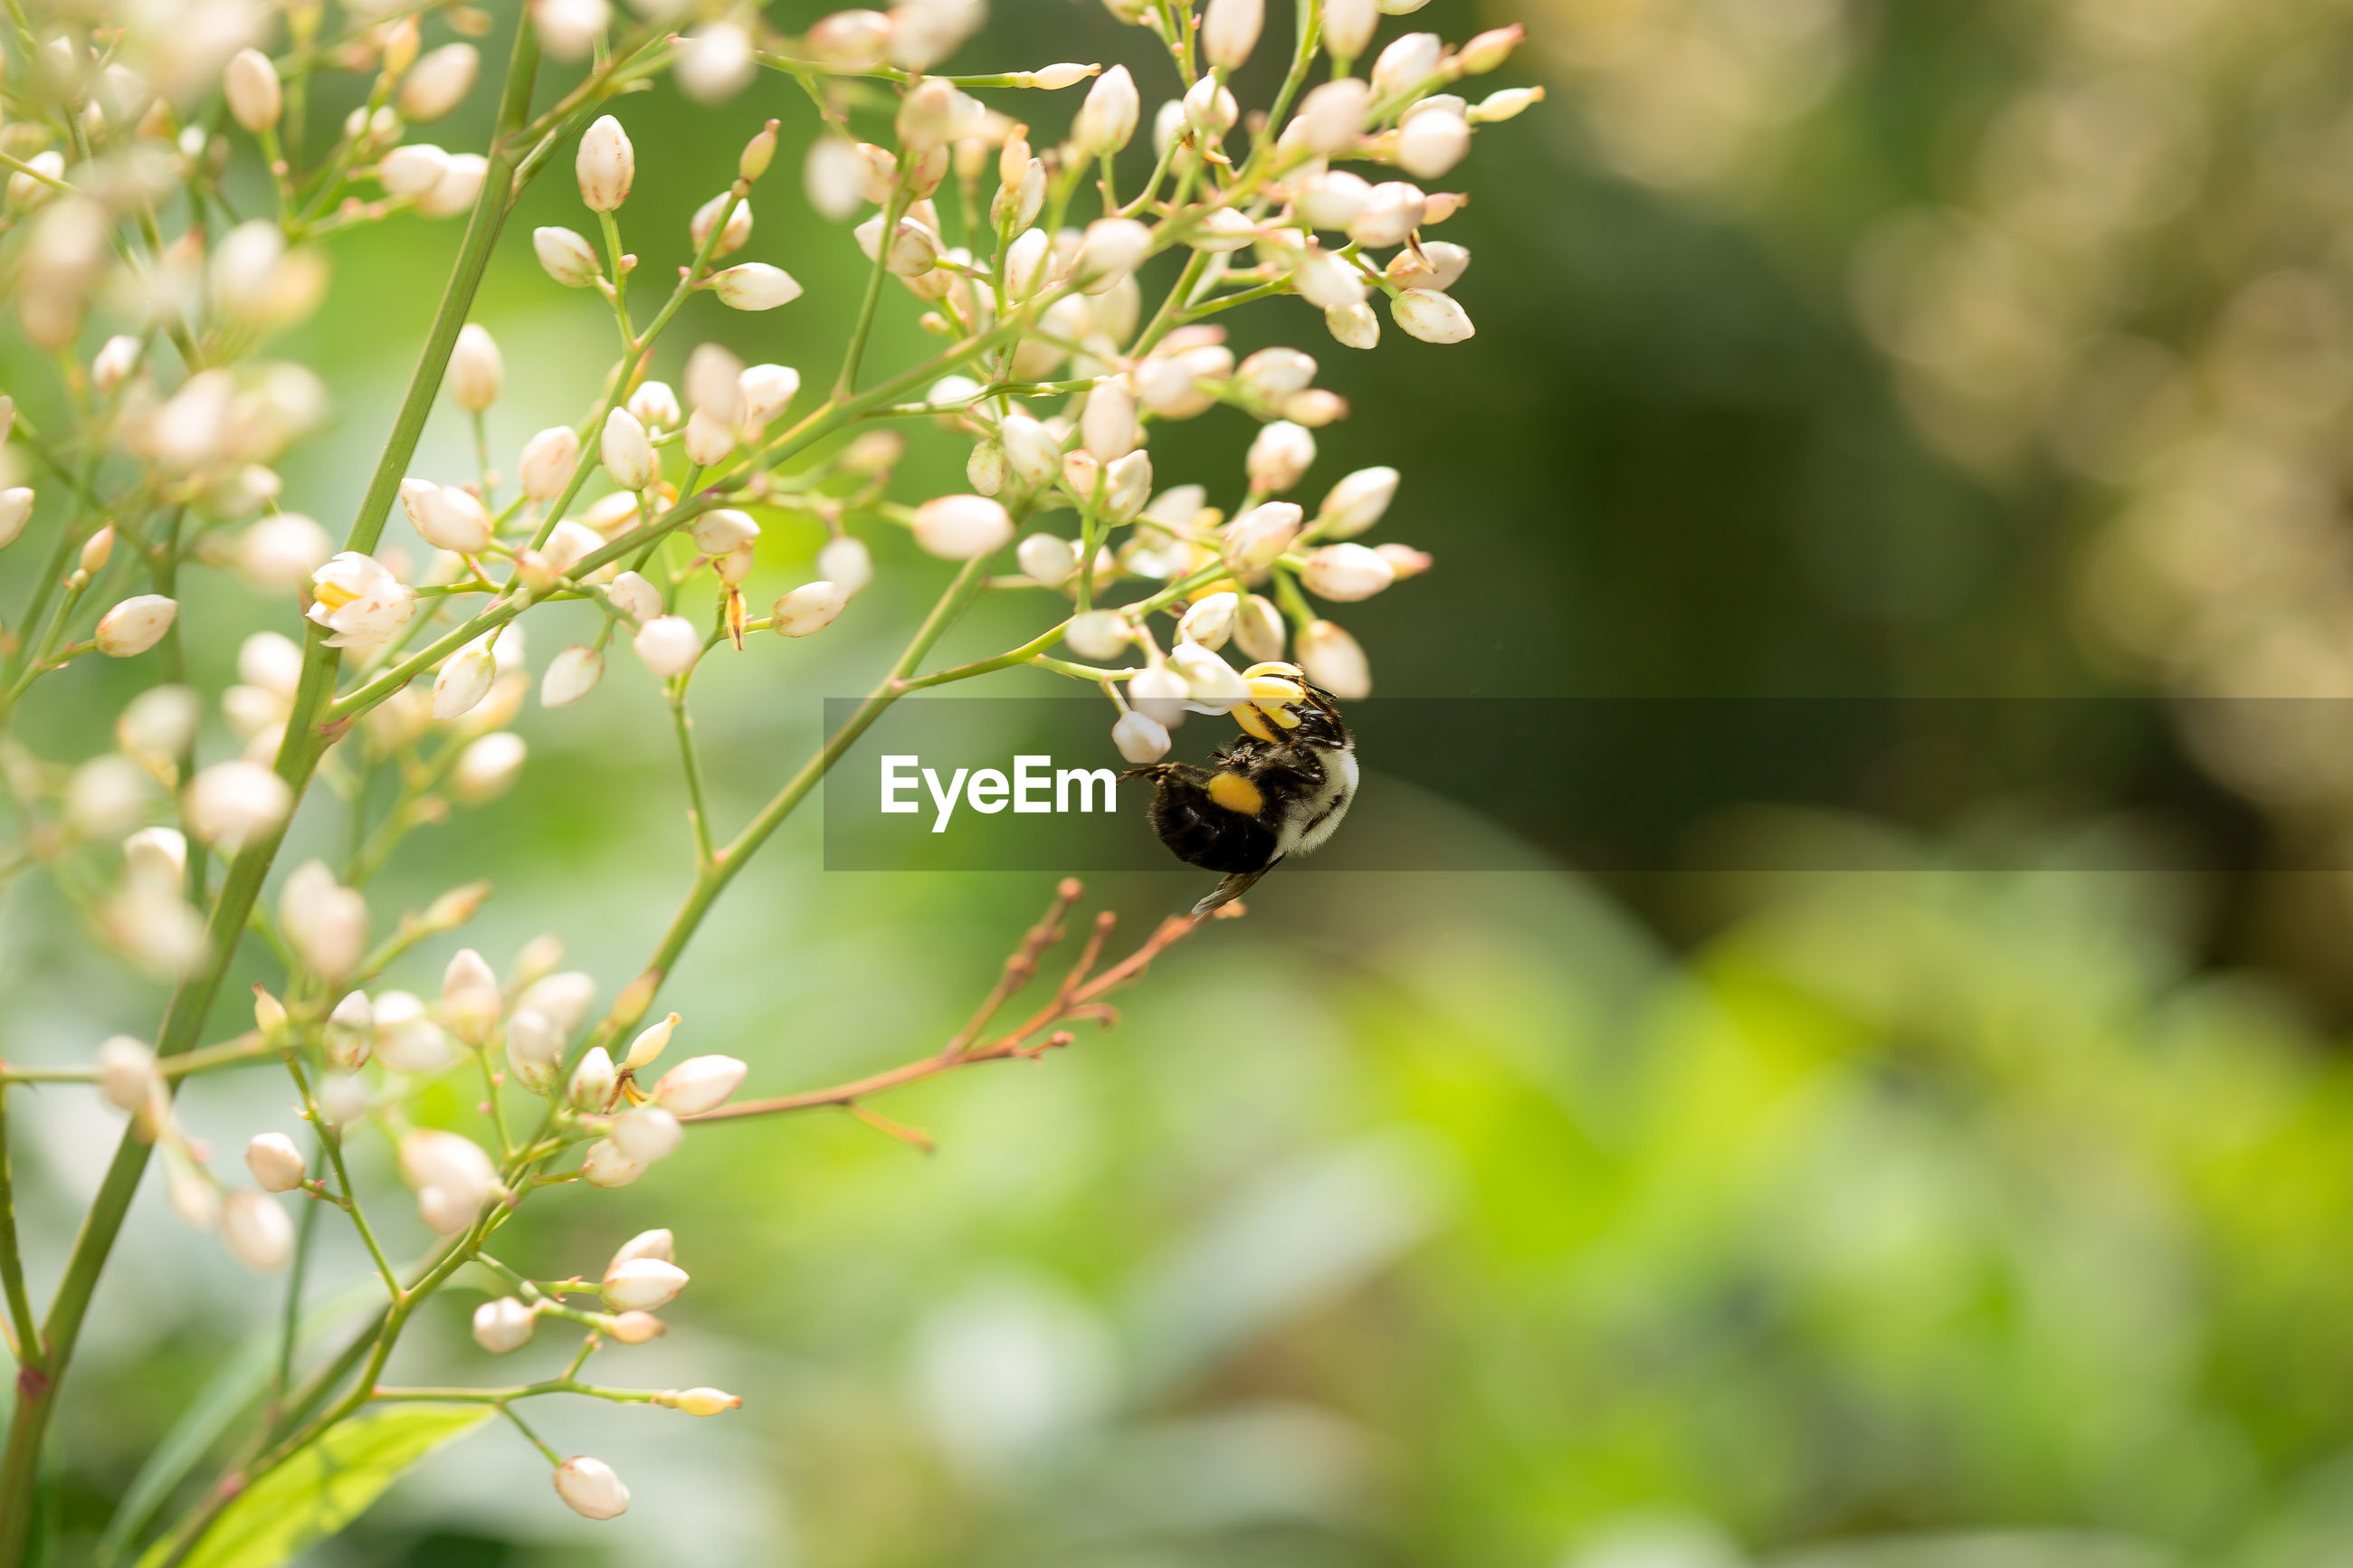 Close-up of bumble bee pollinating on flower bud